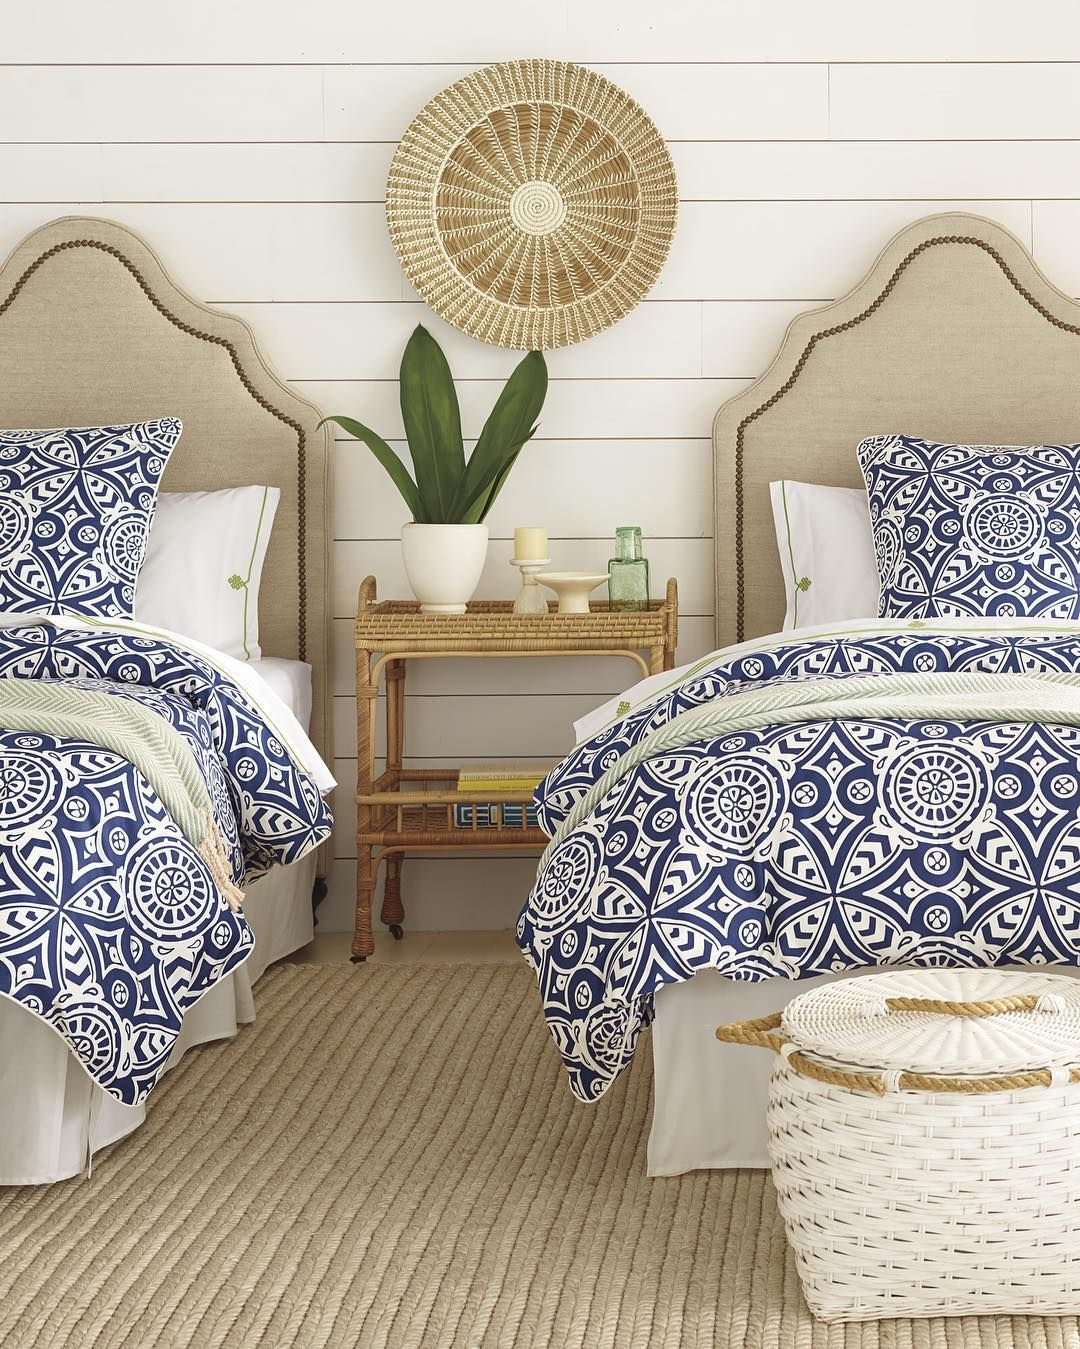 Blue And White Bedding With Sisal Rug Coastal Inspired Bedroom